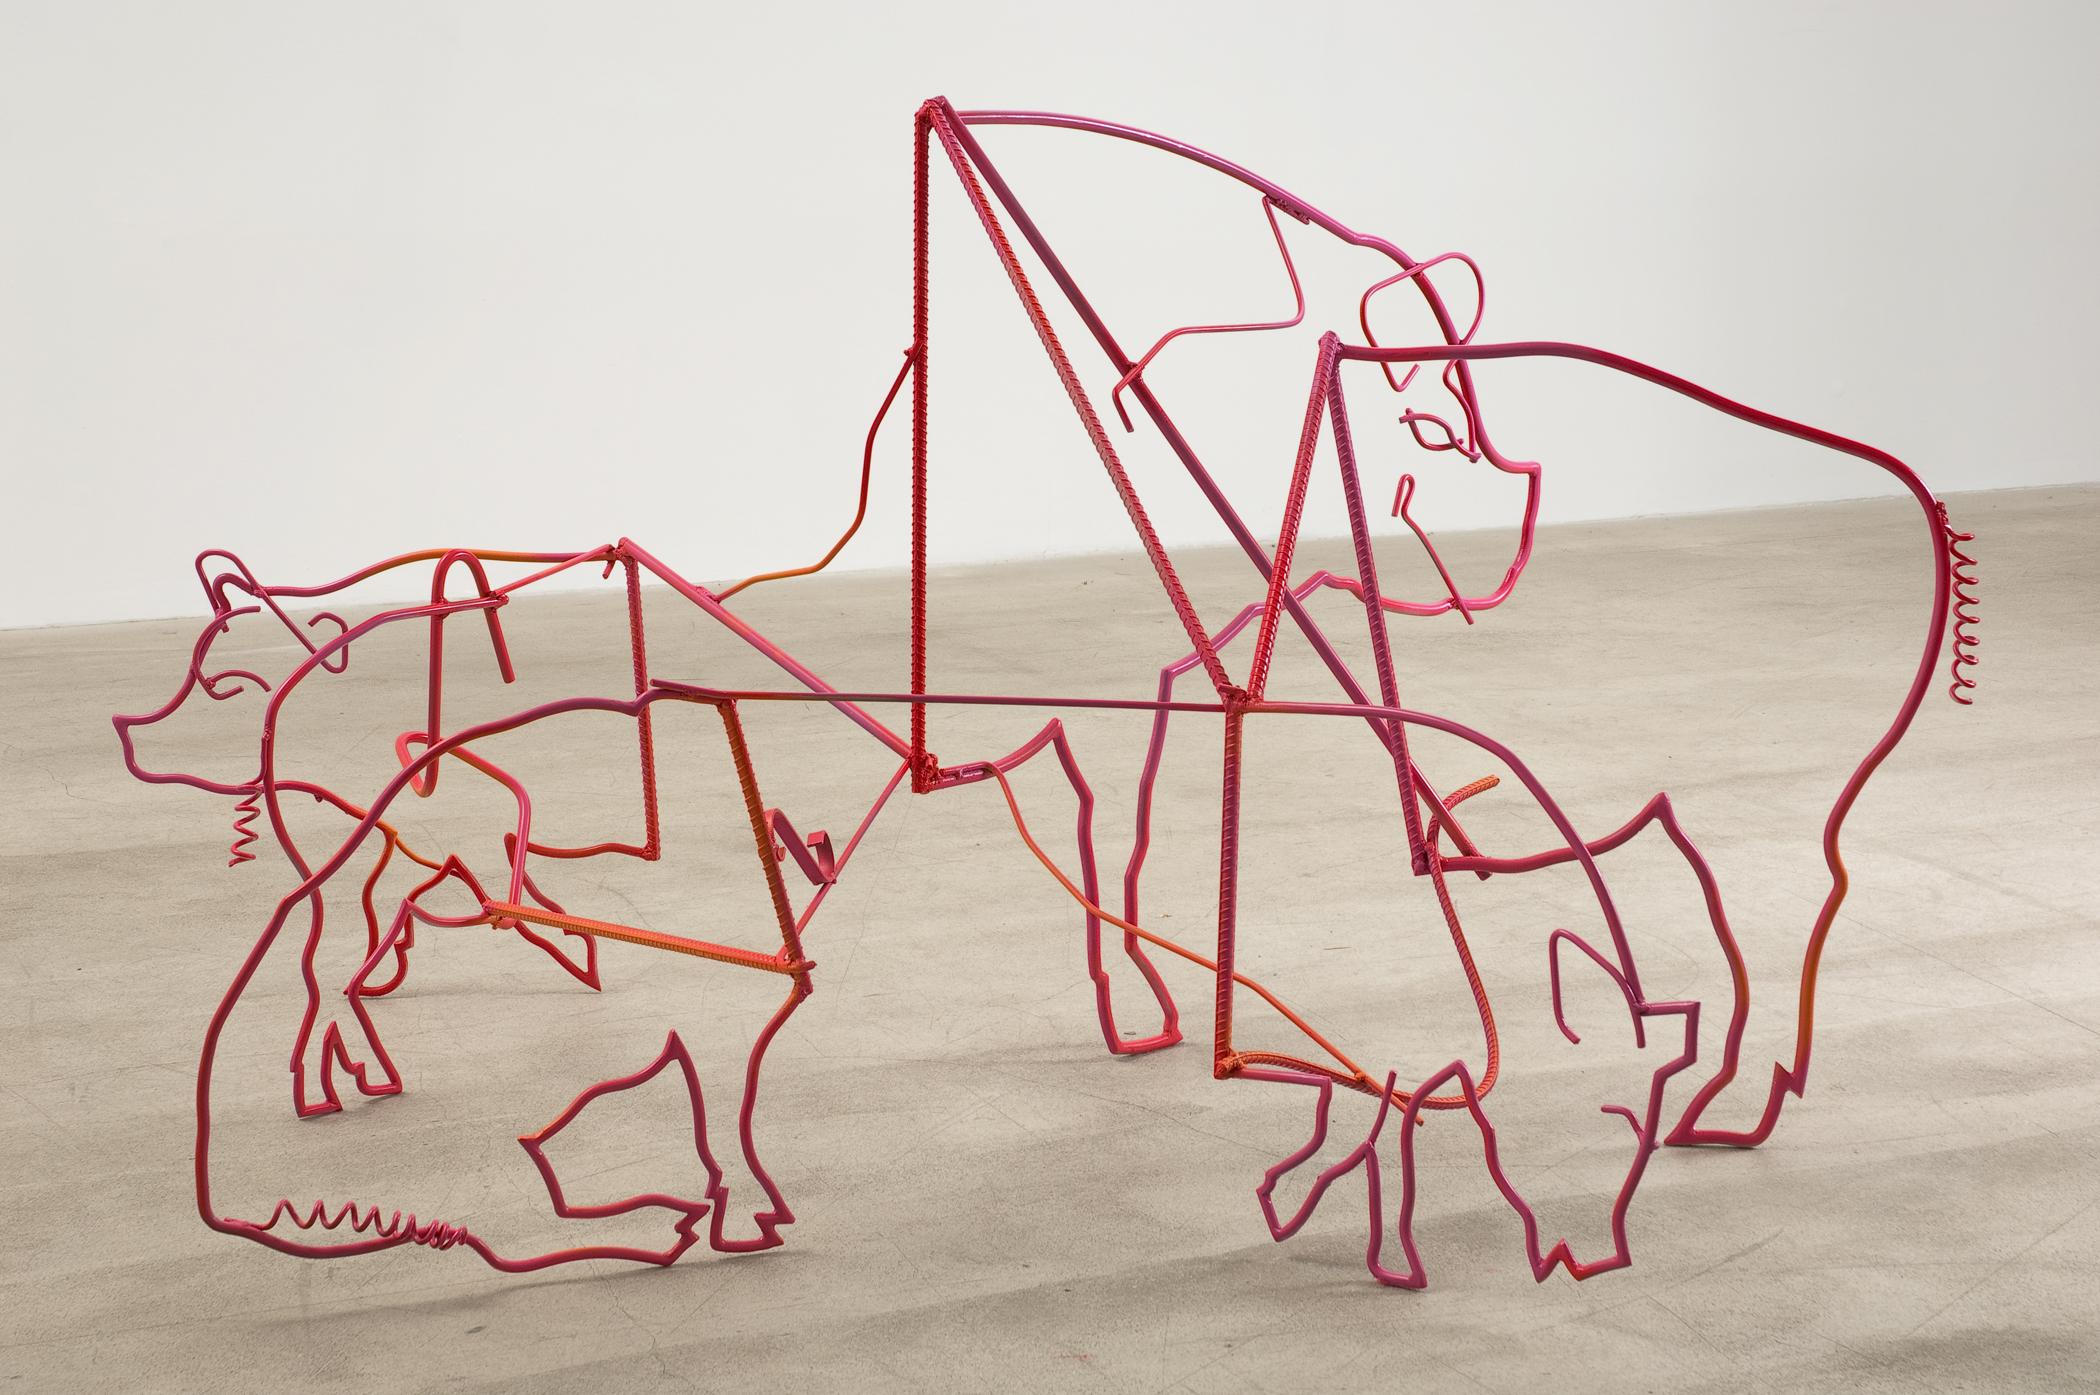 An abstract sculpture depicts five overlapping red pigs.